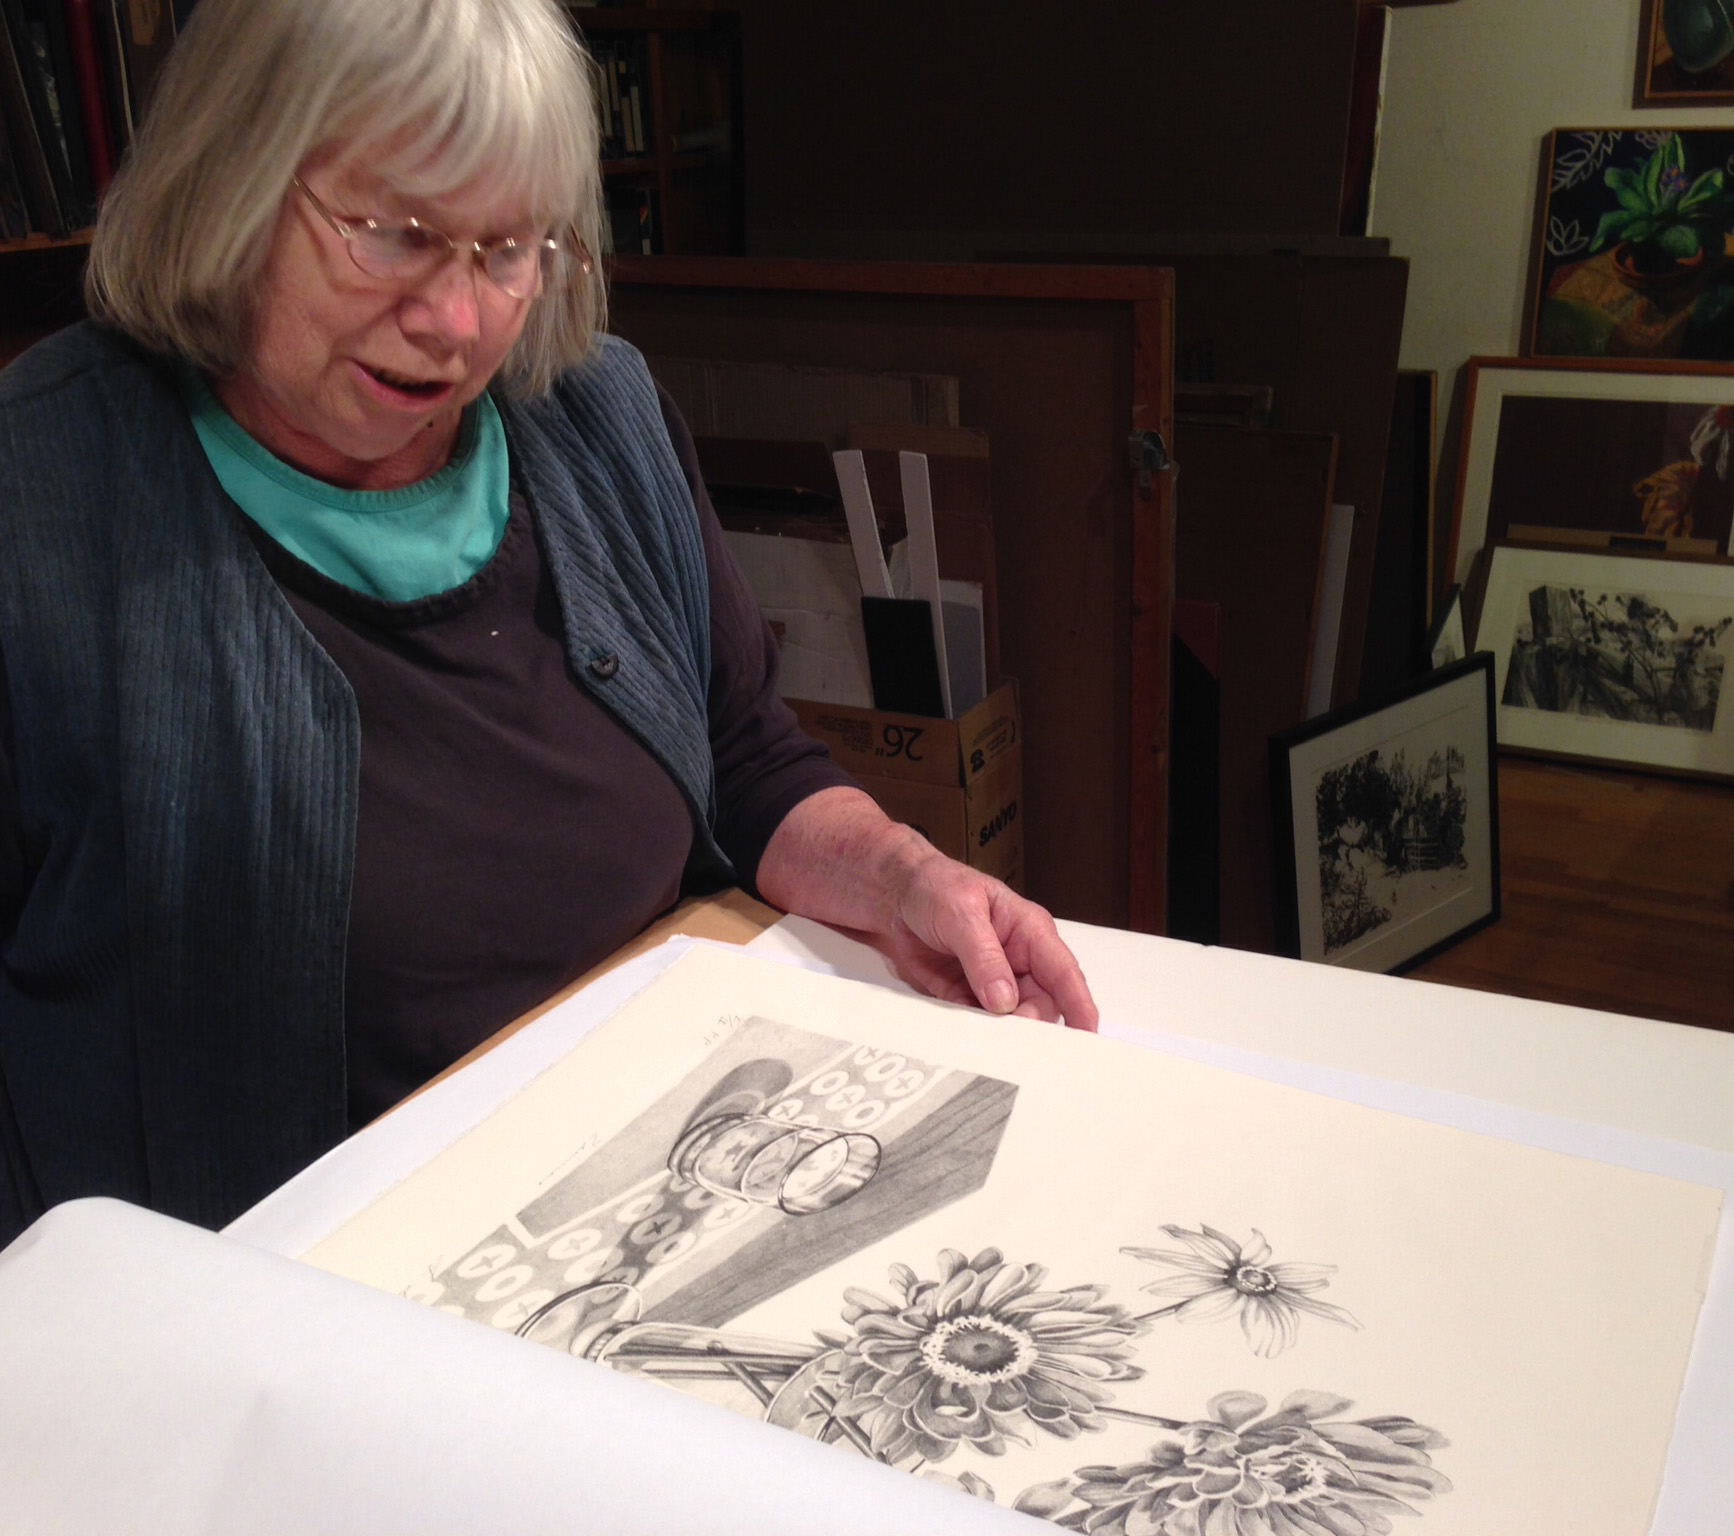 Sondra examines one of the prints from the edition.